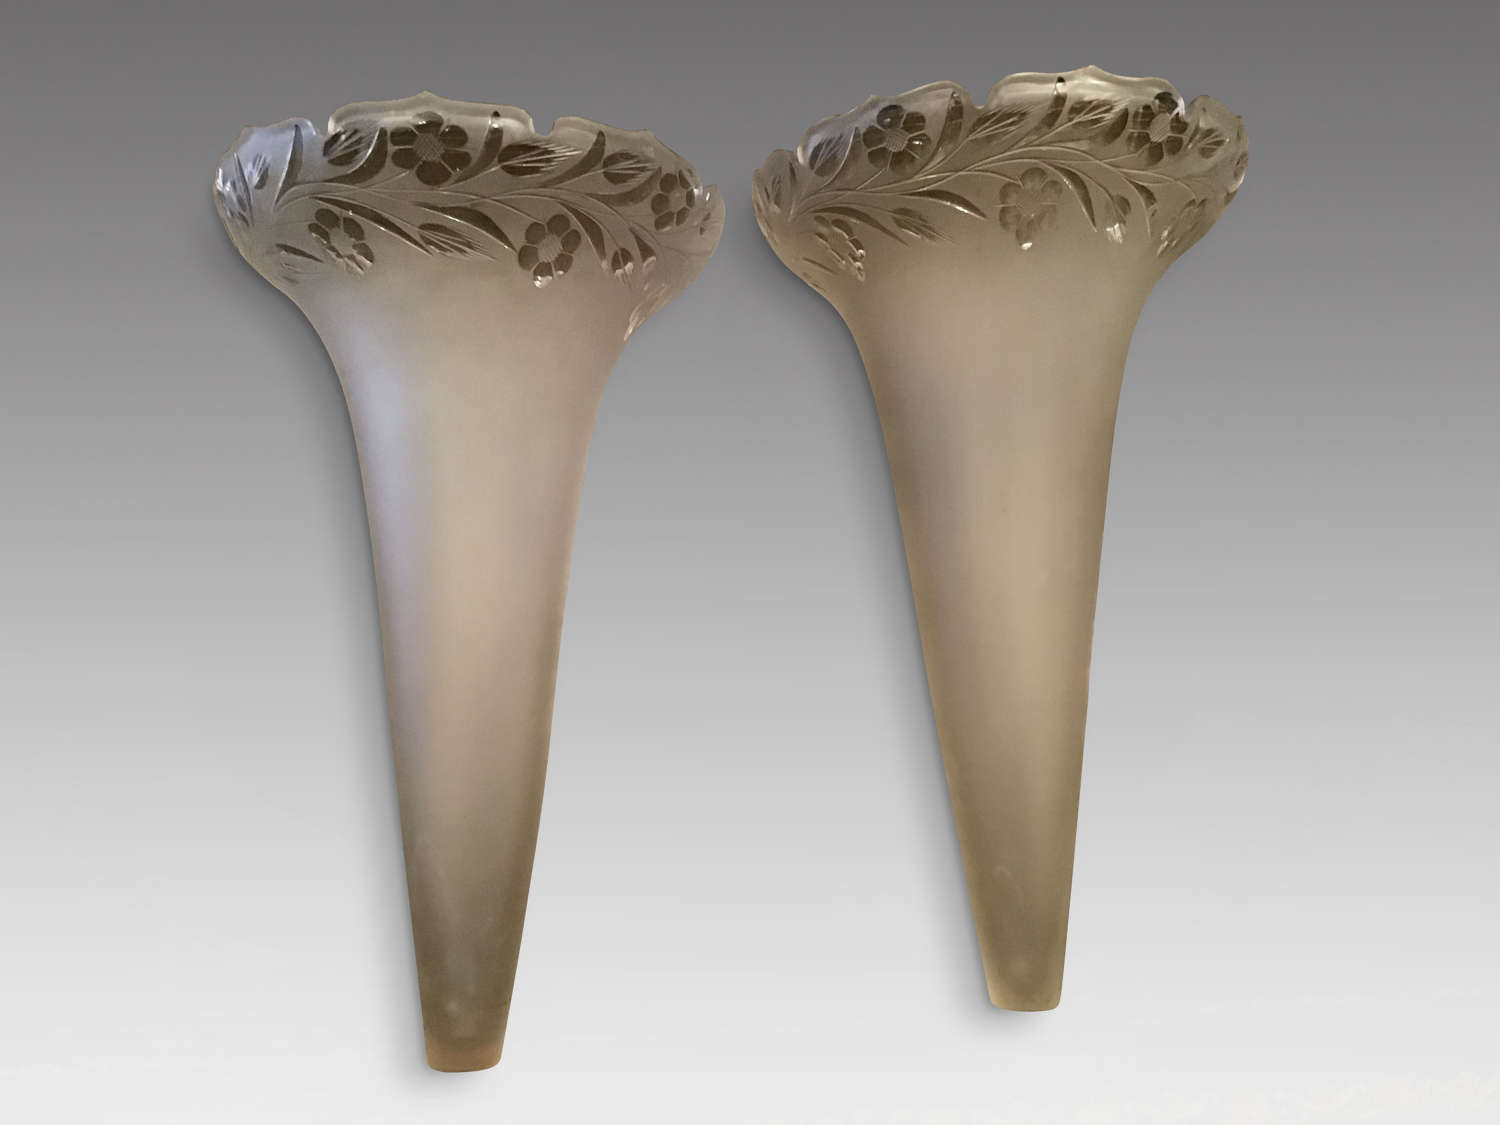 Antique epergne vases